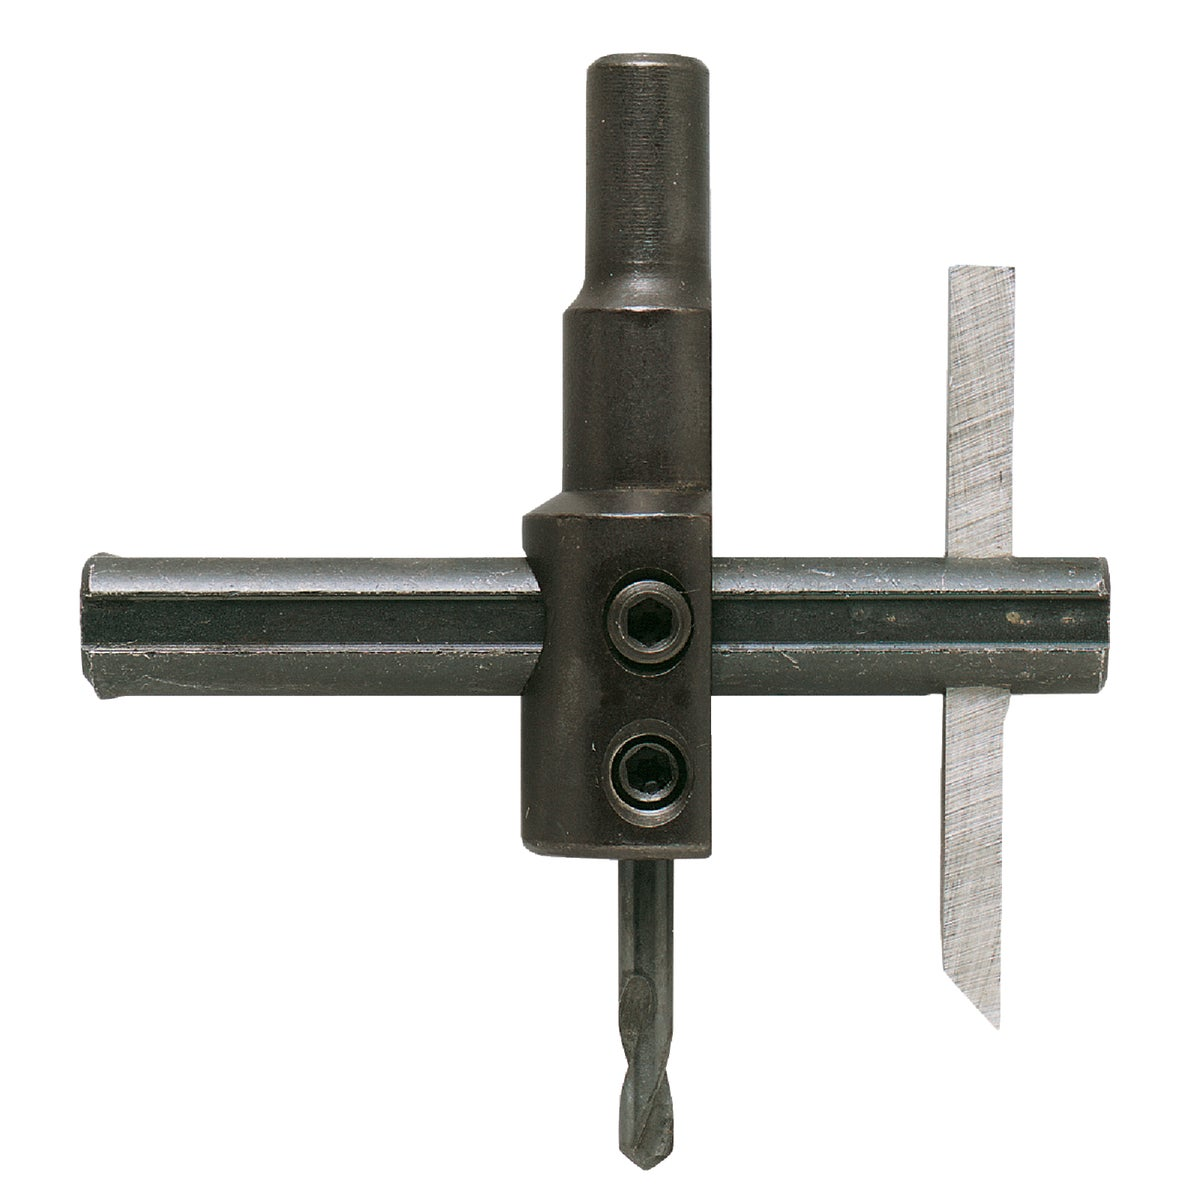 "7/8-4"" CIRCLE CUTTER - 4 by Gen Tools Mfg"